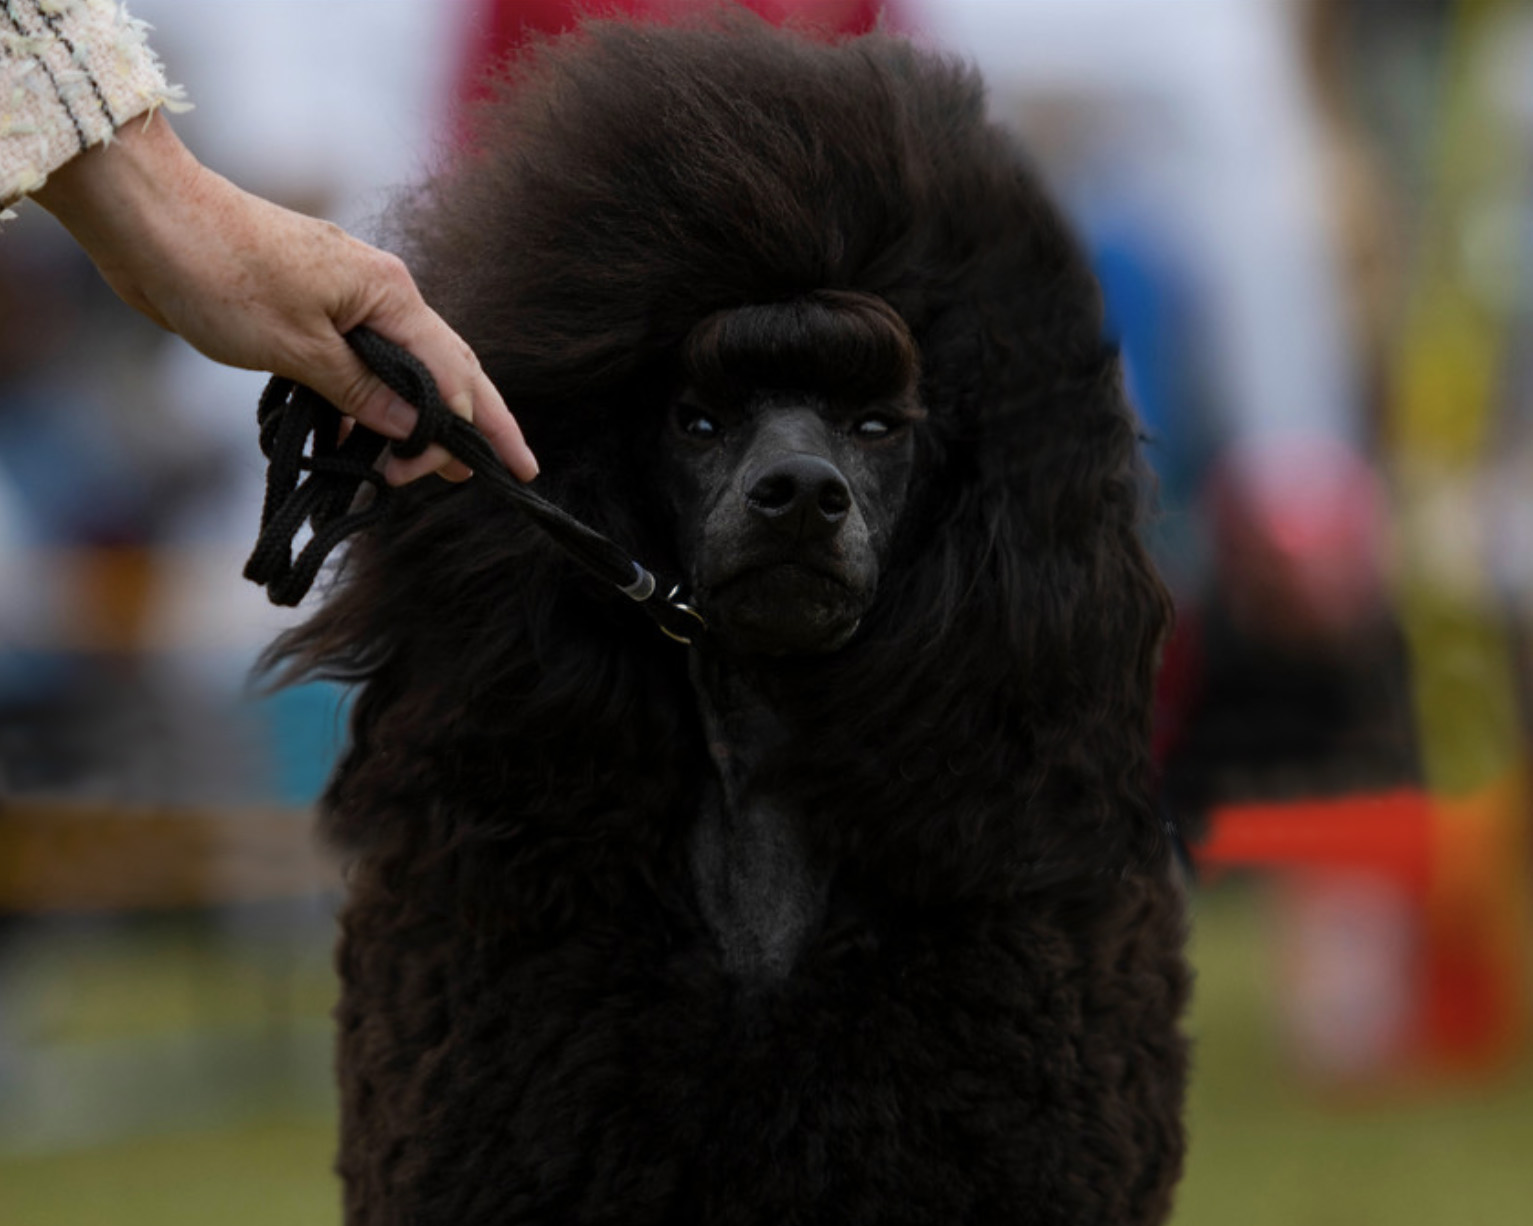 Kluane is a blue Standard Poodle. The newest addition to the Galavanting Poodles pack and already exceeding expectations.